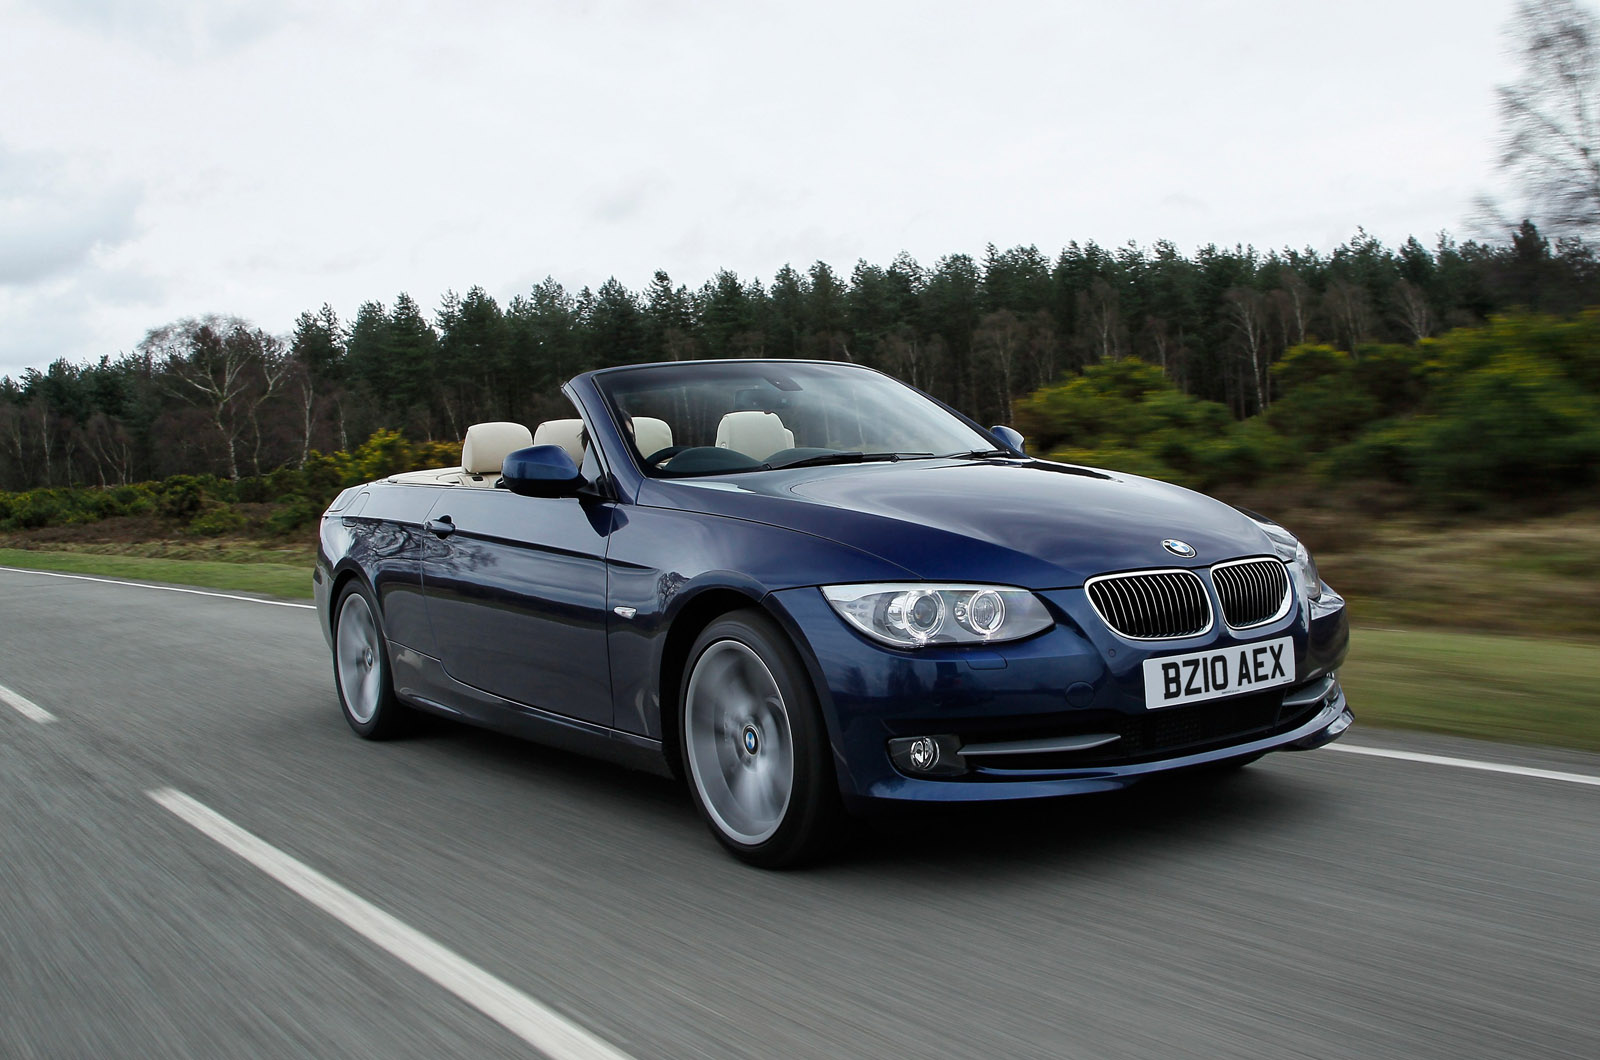 BMW I DCT Convertible First UK Drive - 2013 bmw 335i convertible